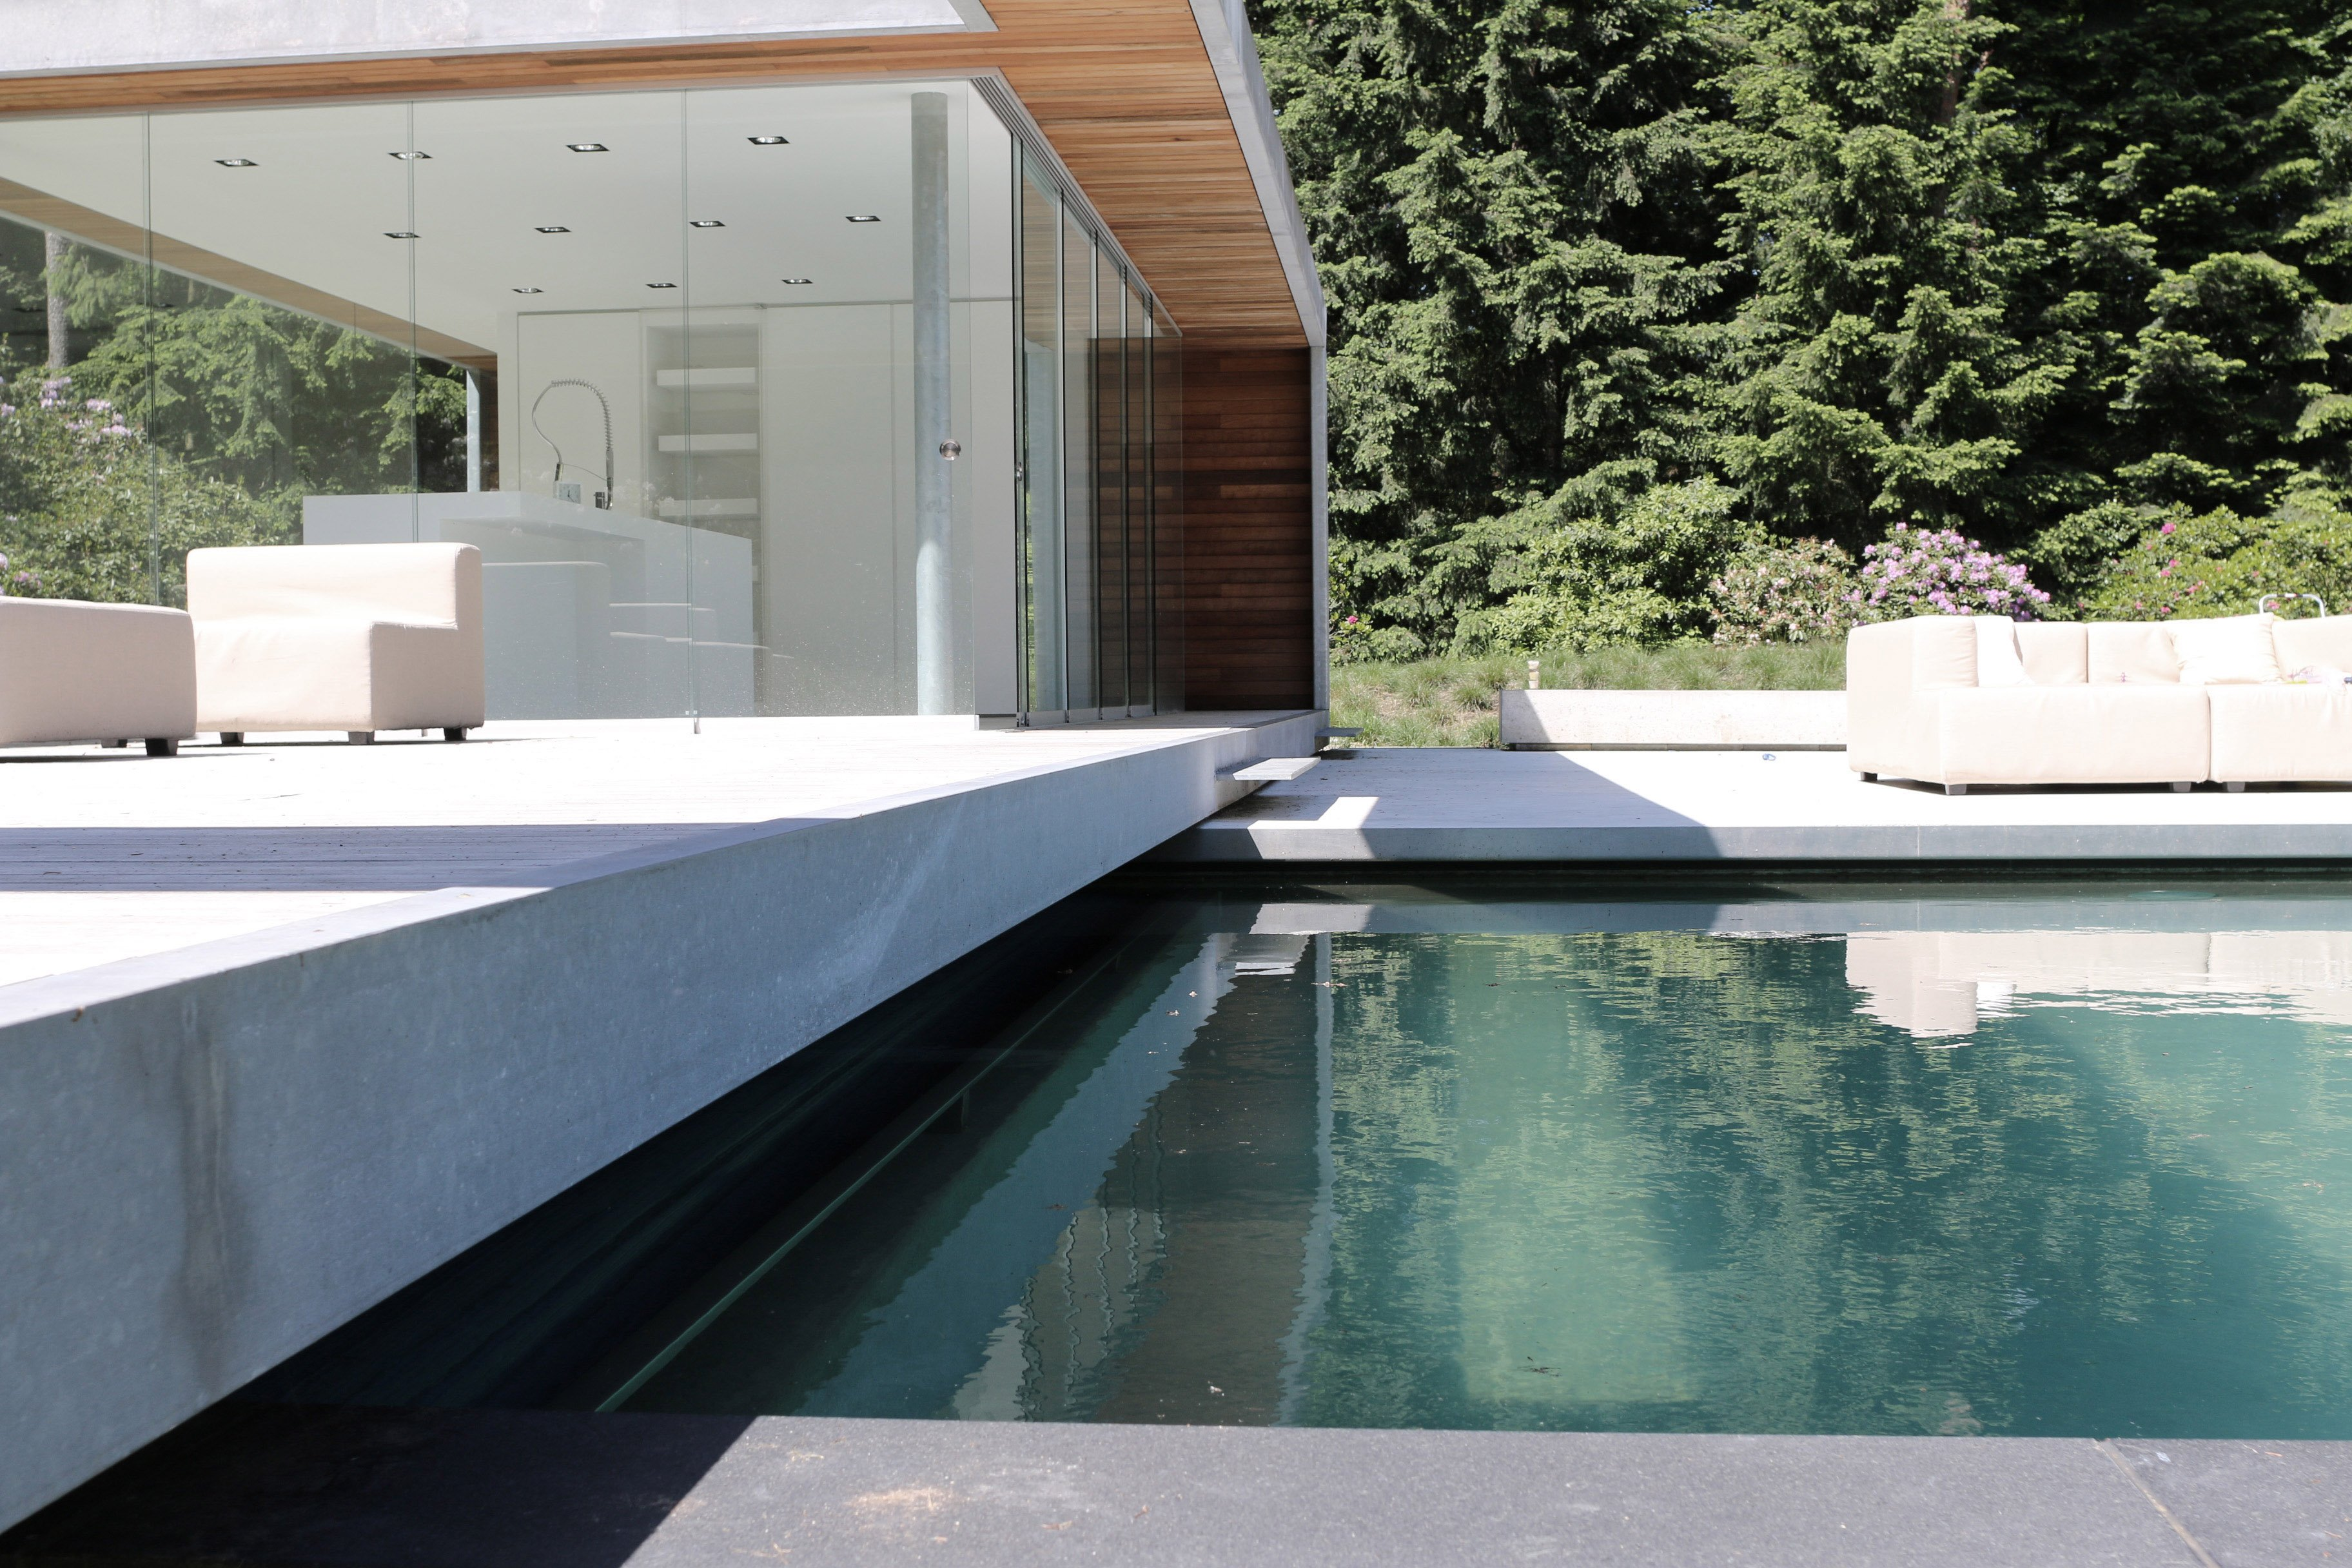 4_Andrew-van-Egmond_poolhouse_Minimalstic-garden